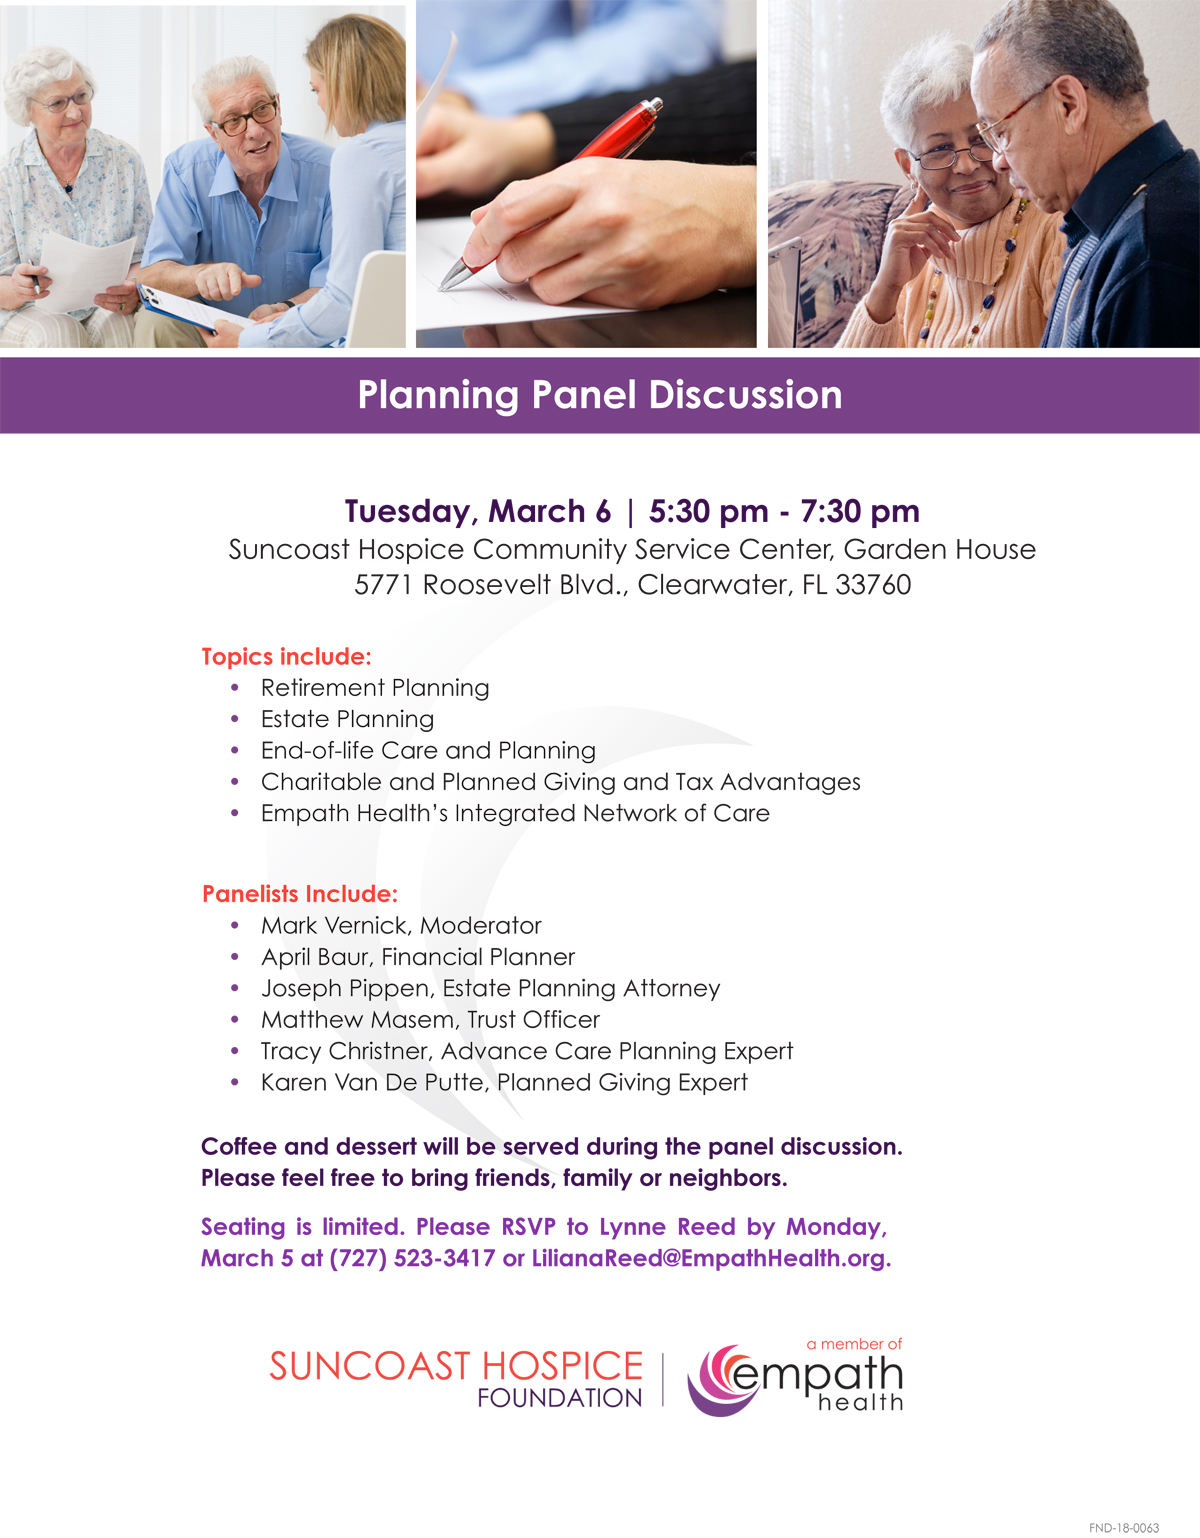 Expert Planning Panel Seminar @ Suncoast Hospice | Empath Health - Garden House | Clearwater | Florida | United States